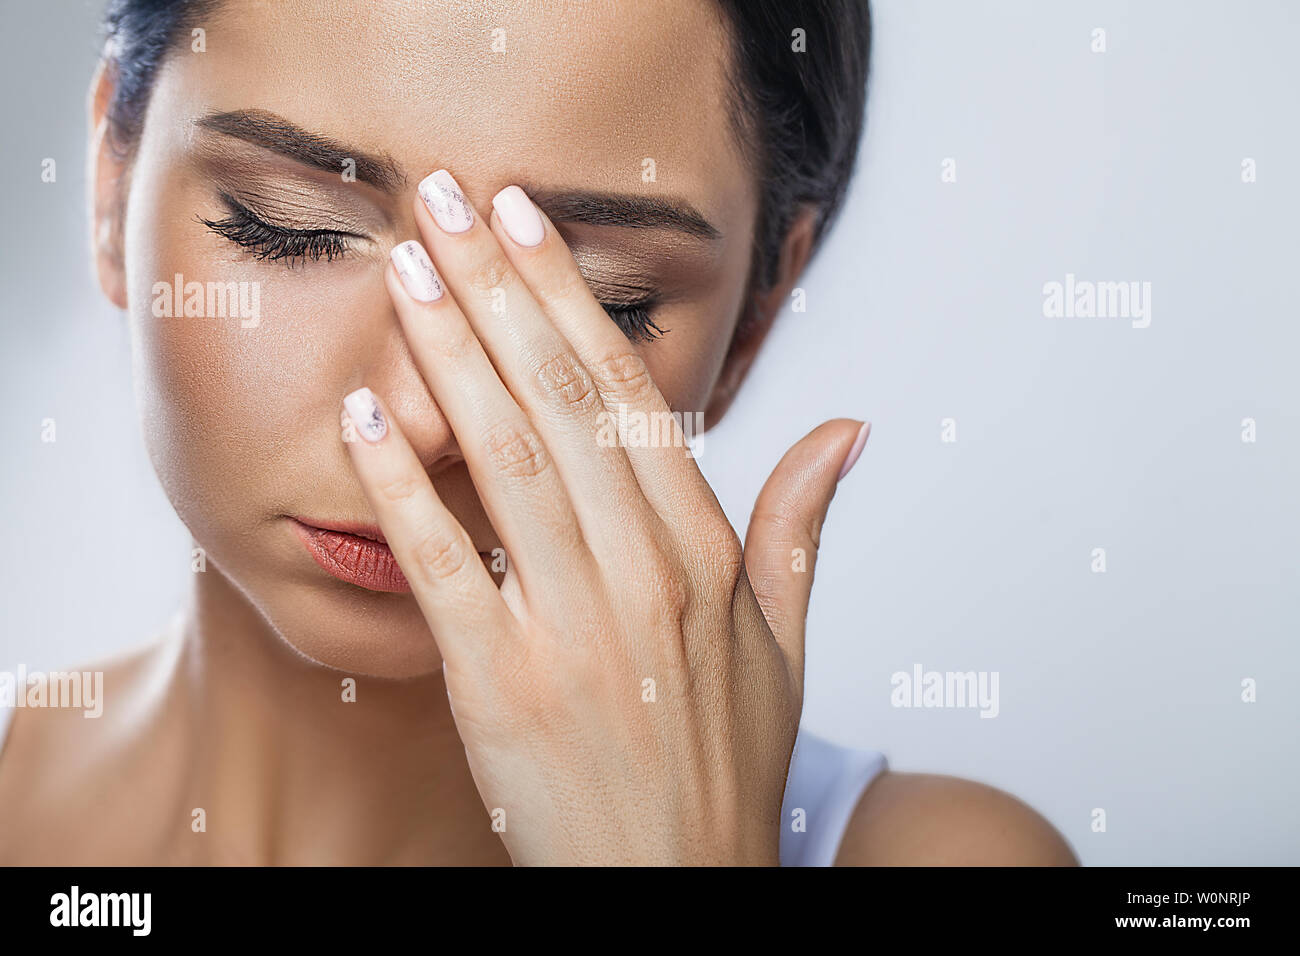 Health And Pain. Stressed Exhausted Young Woman Having Strong Tension Headache. Closeup Portrait Of Beautiful Sick Girl Suffering From Head Migraine Stock Photo